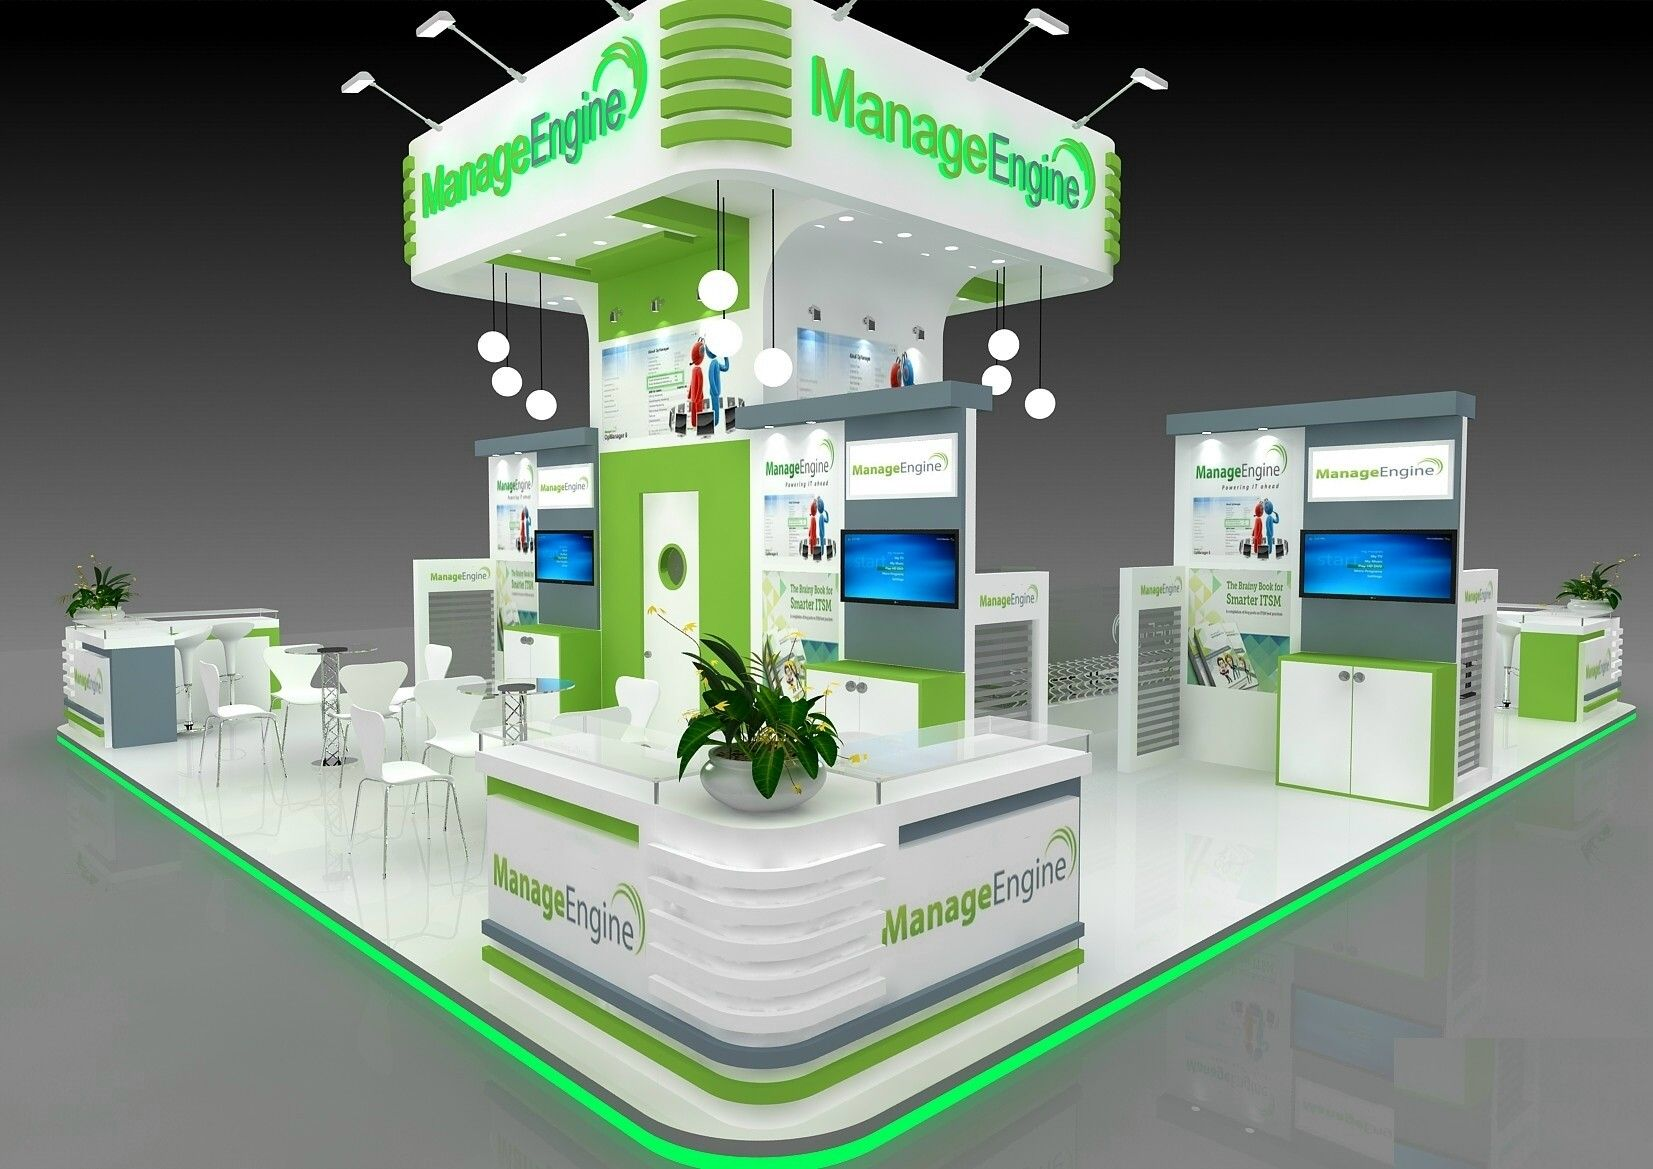 D Exhibition Booth Model : Trade show booth design tradeshow exhibit ideas banner graphics